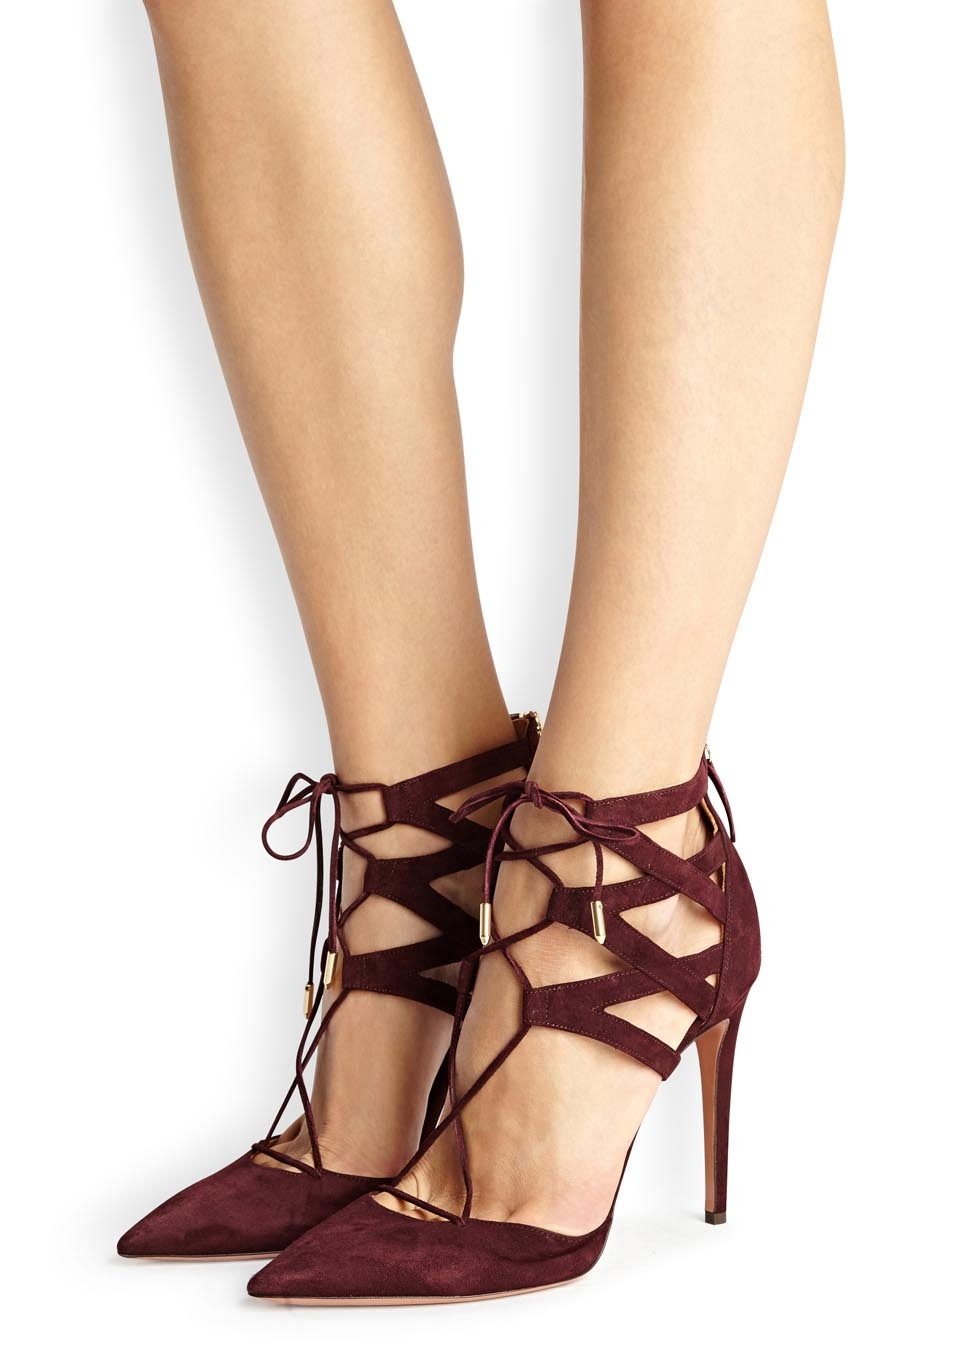 Lyst Aquazzura Belgravia Dark Burgundy Suede Pumps In Purple